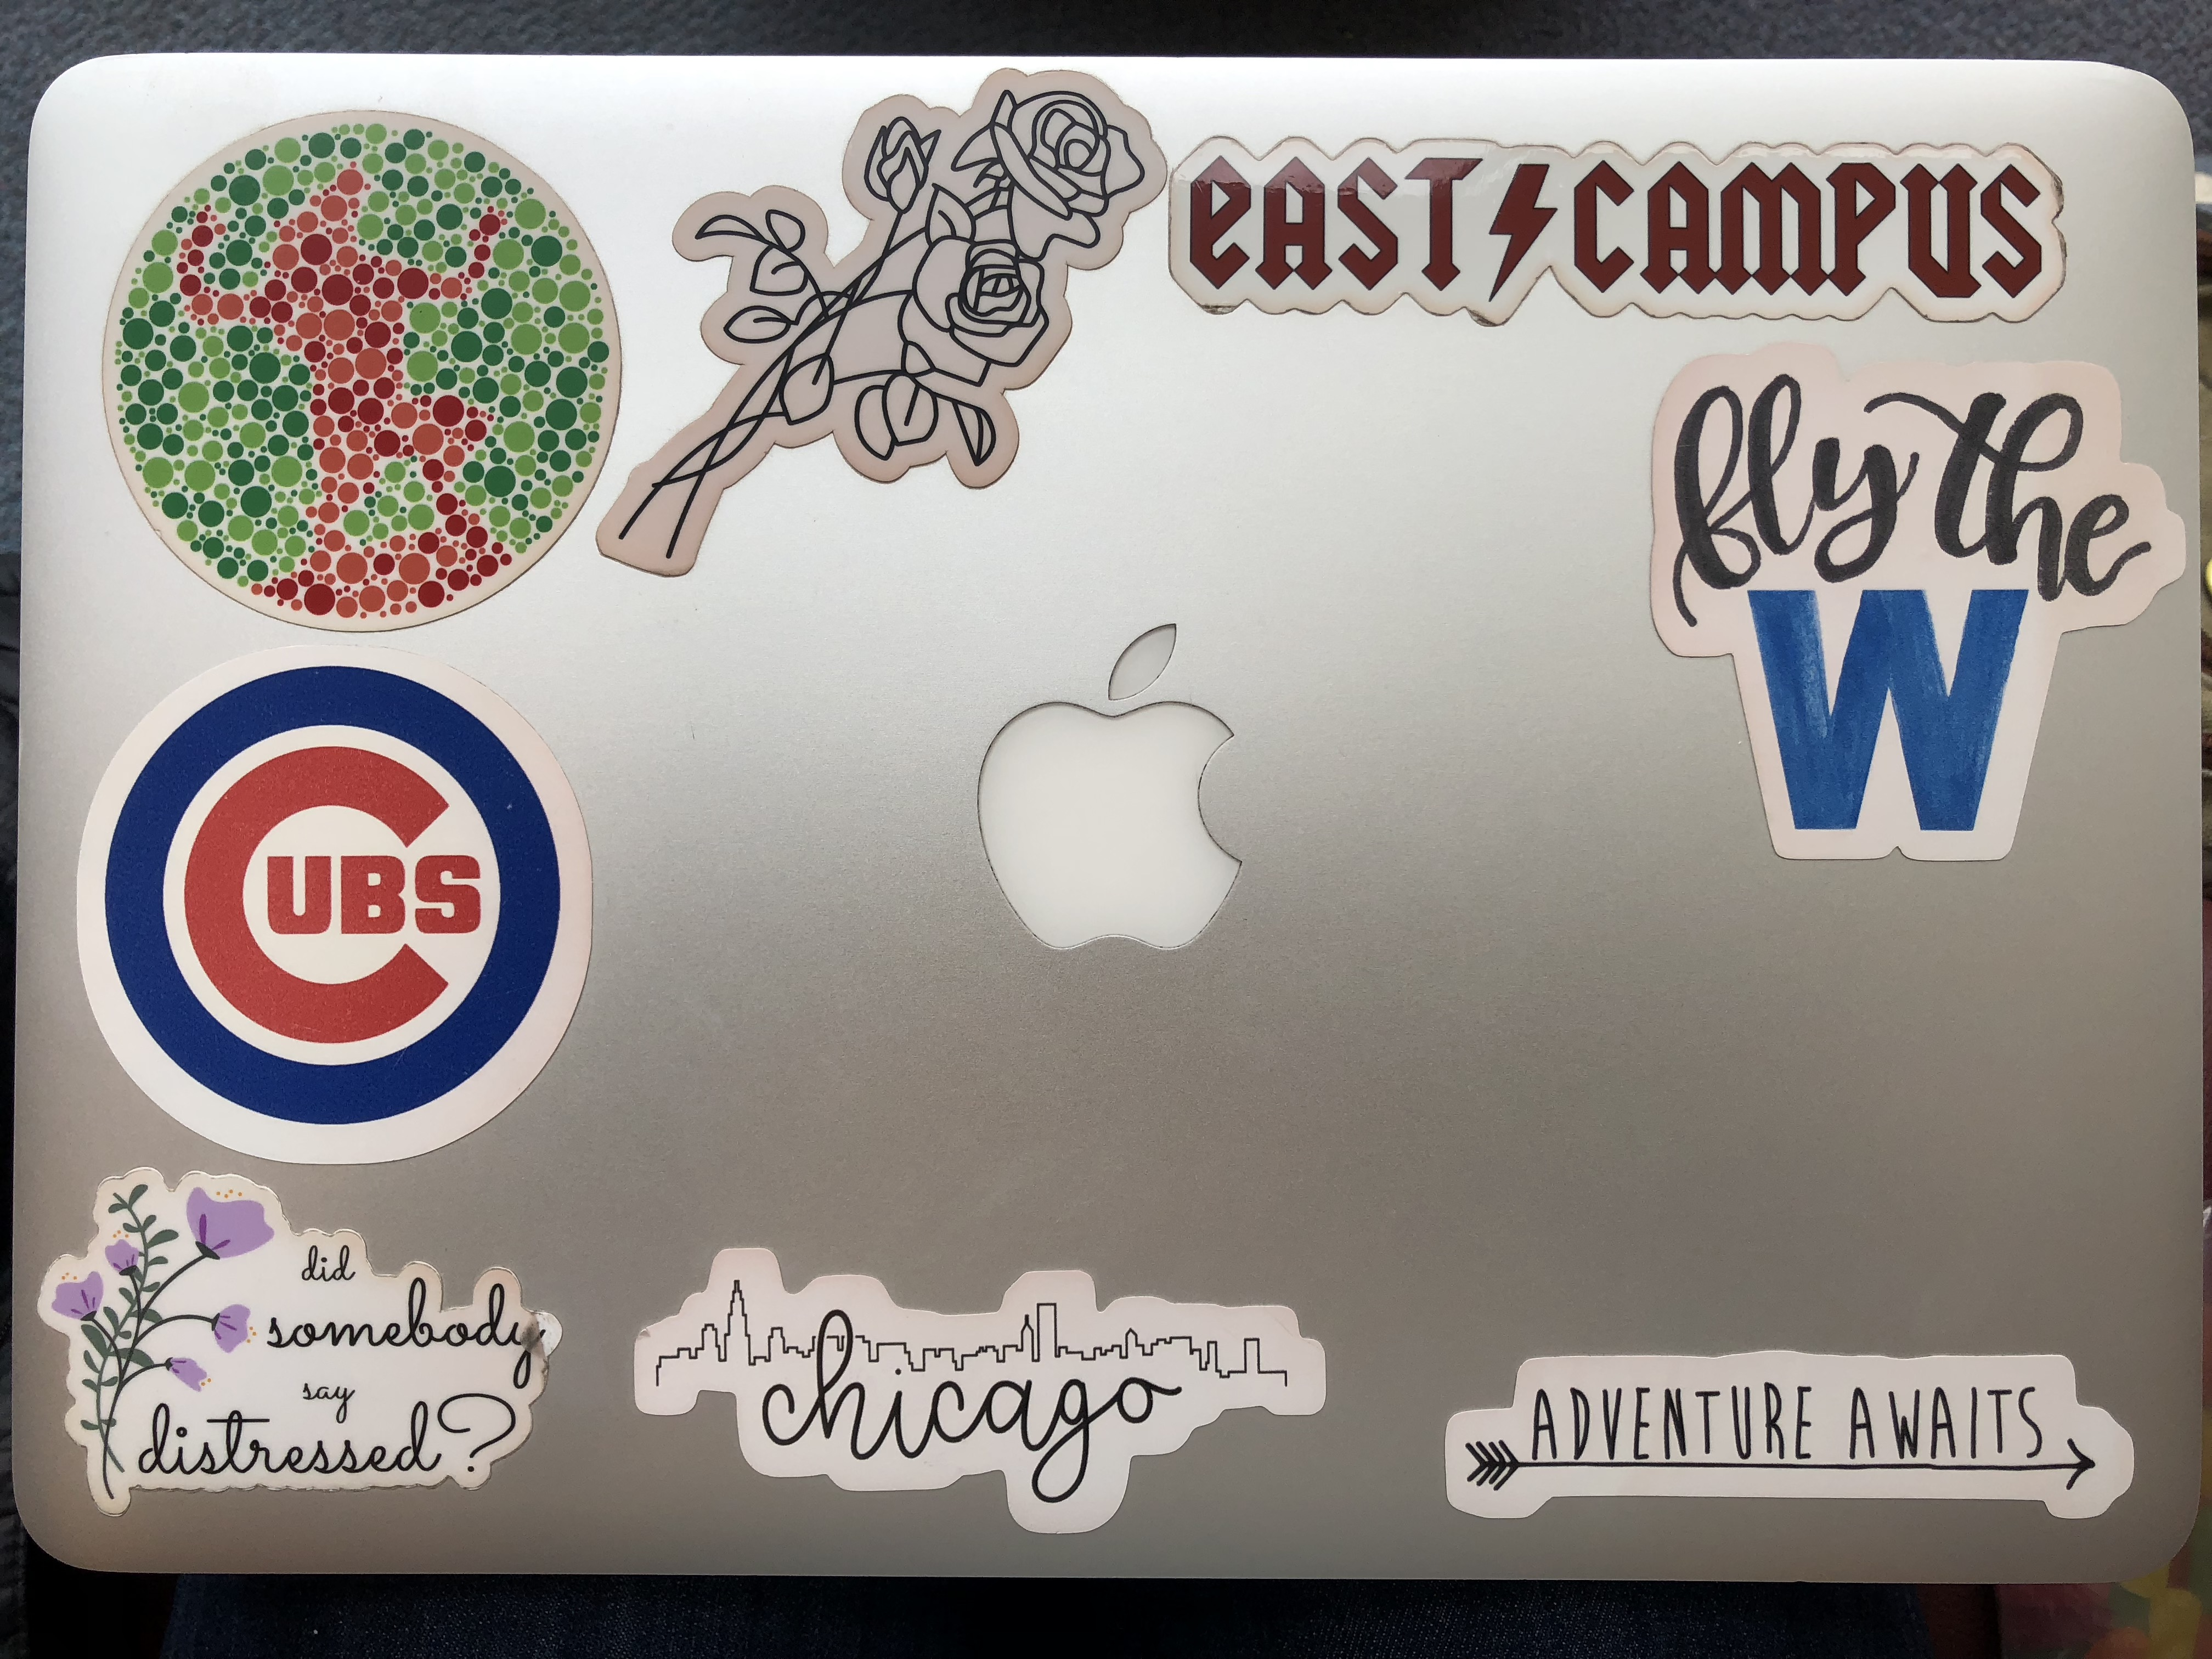 The stickers mostly represent my friends home and love for nature everyone who knows me knows that i absolutely love everything about chicago and the